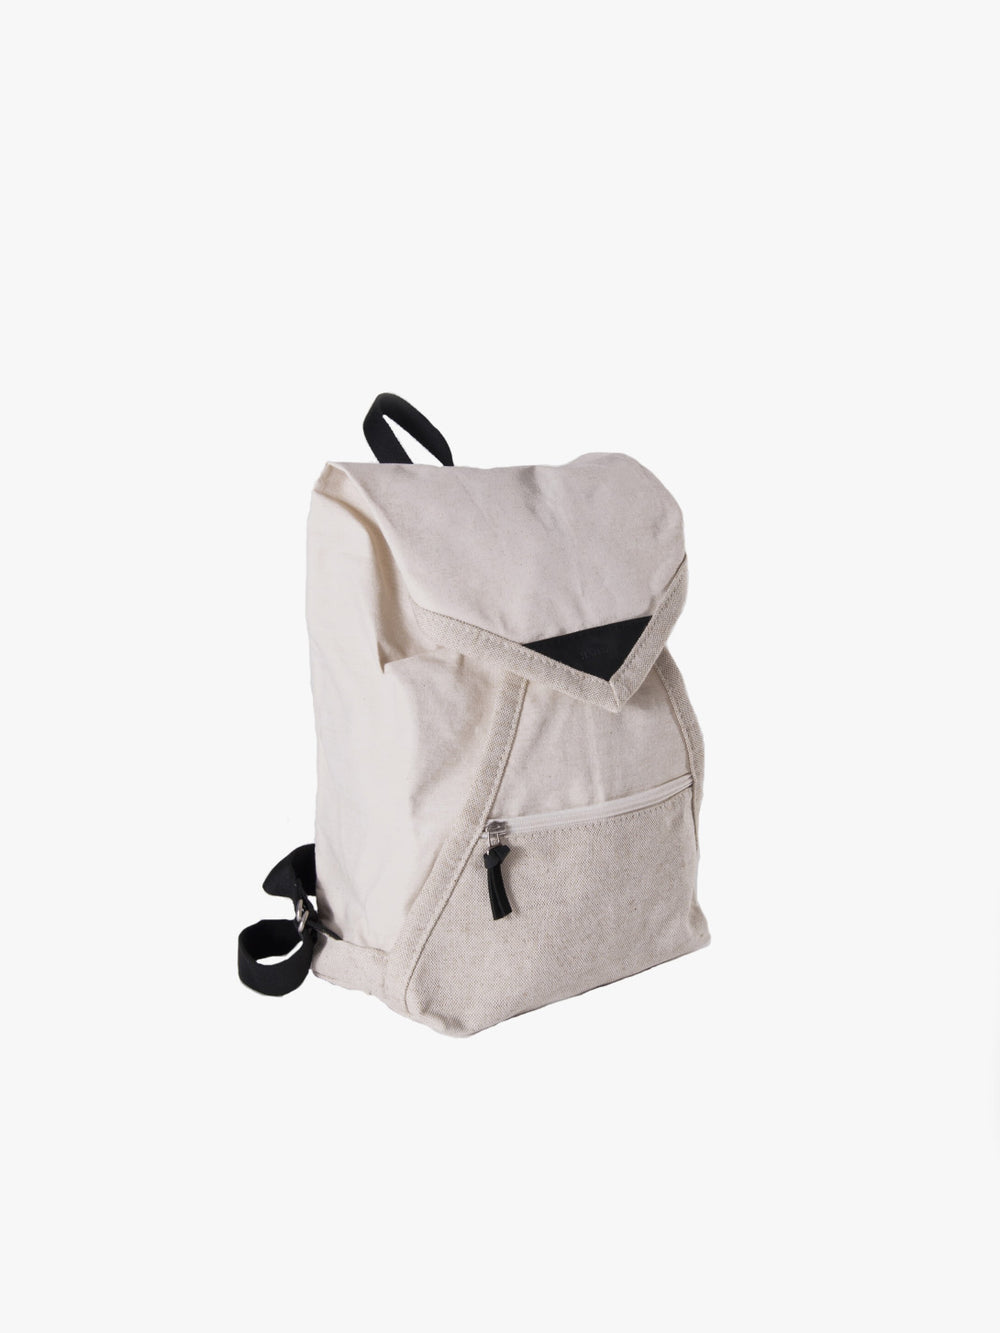 Catamaran backpack is designed and handcrafted in Berlin by Haenska